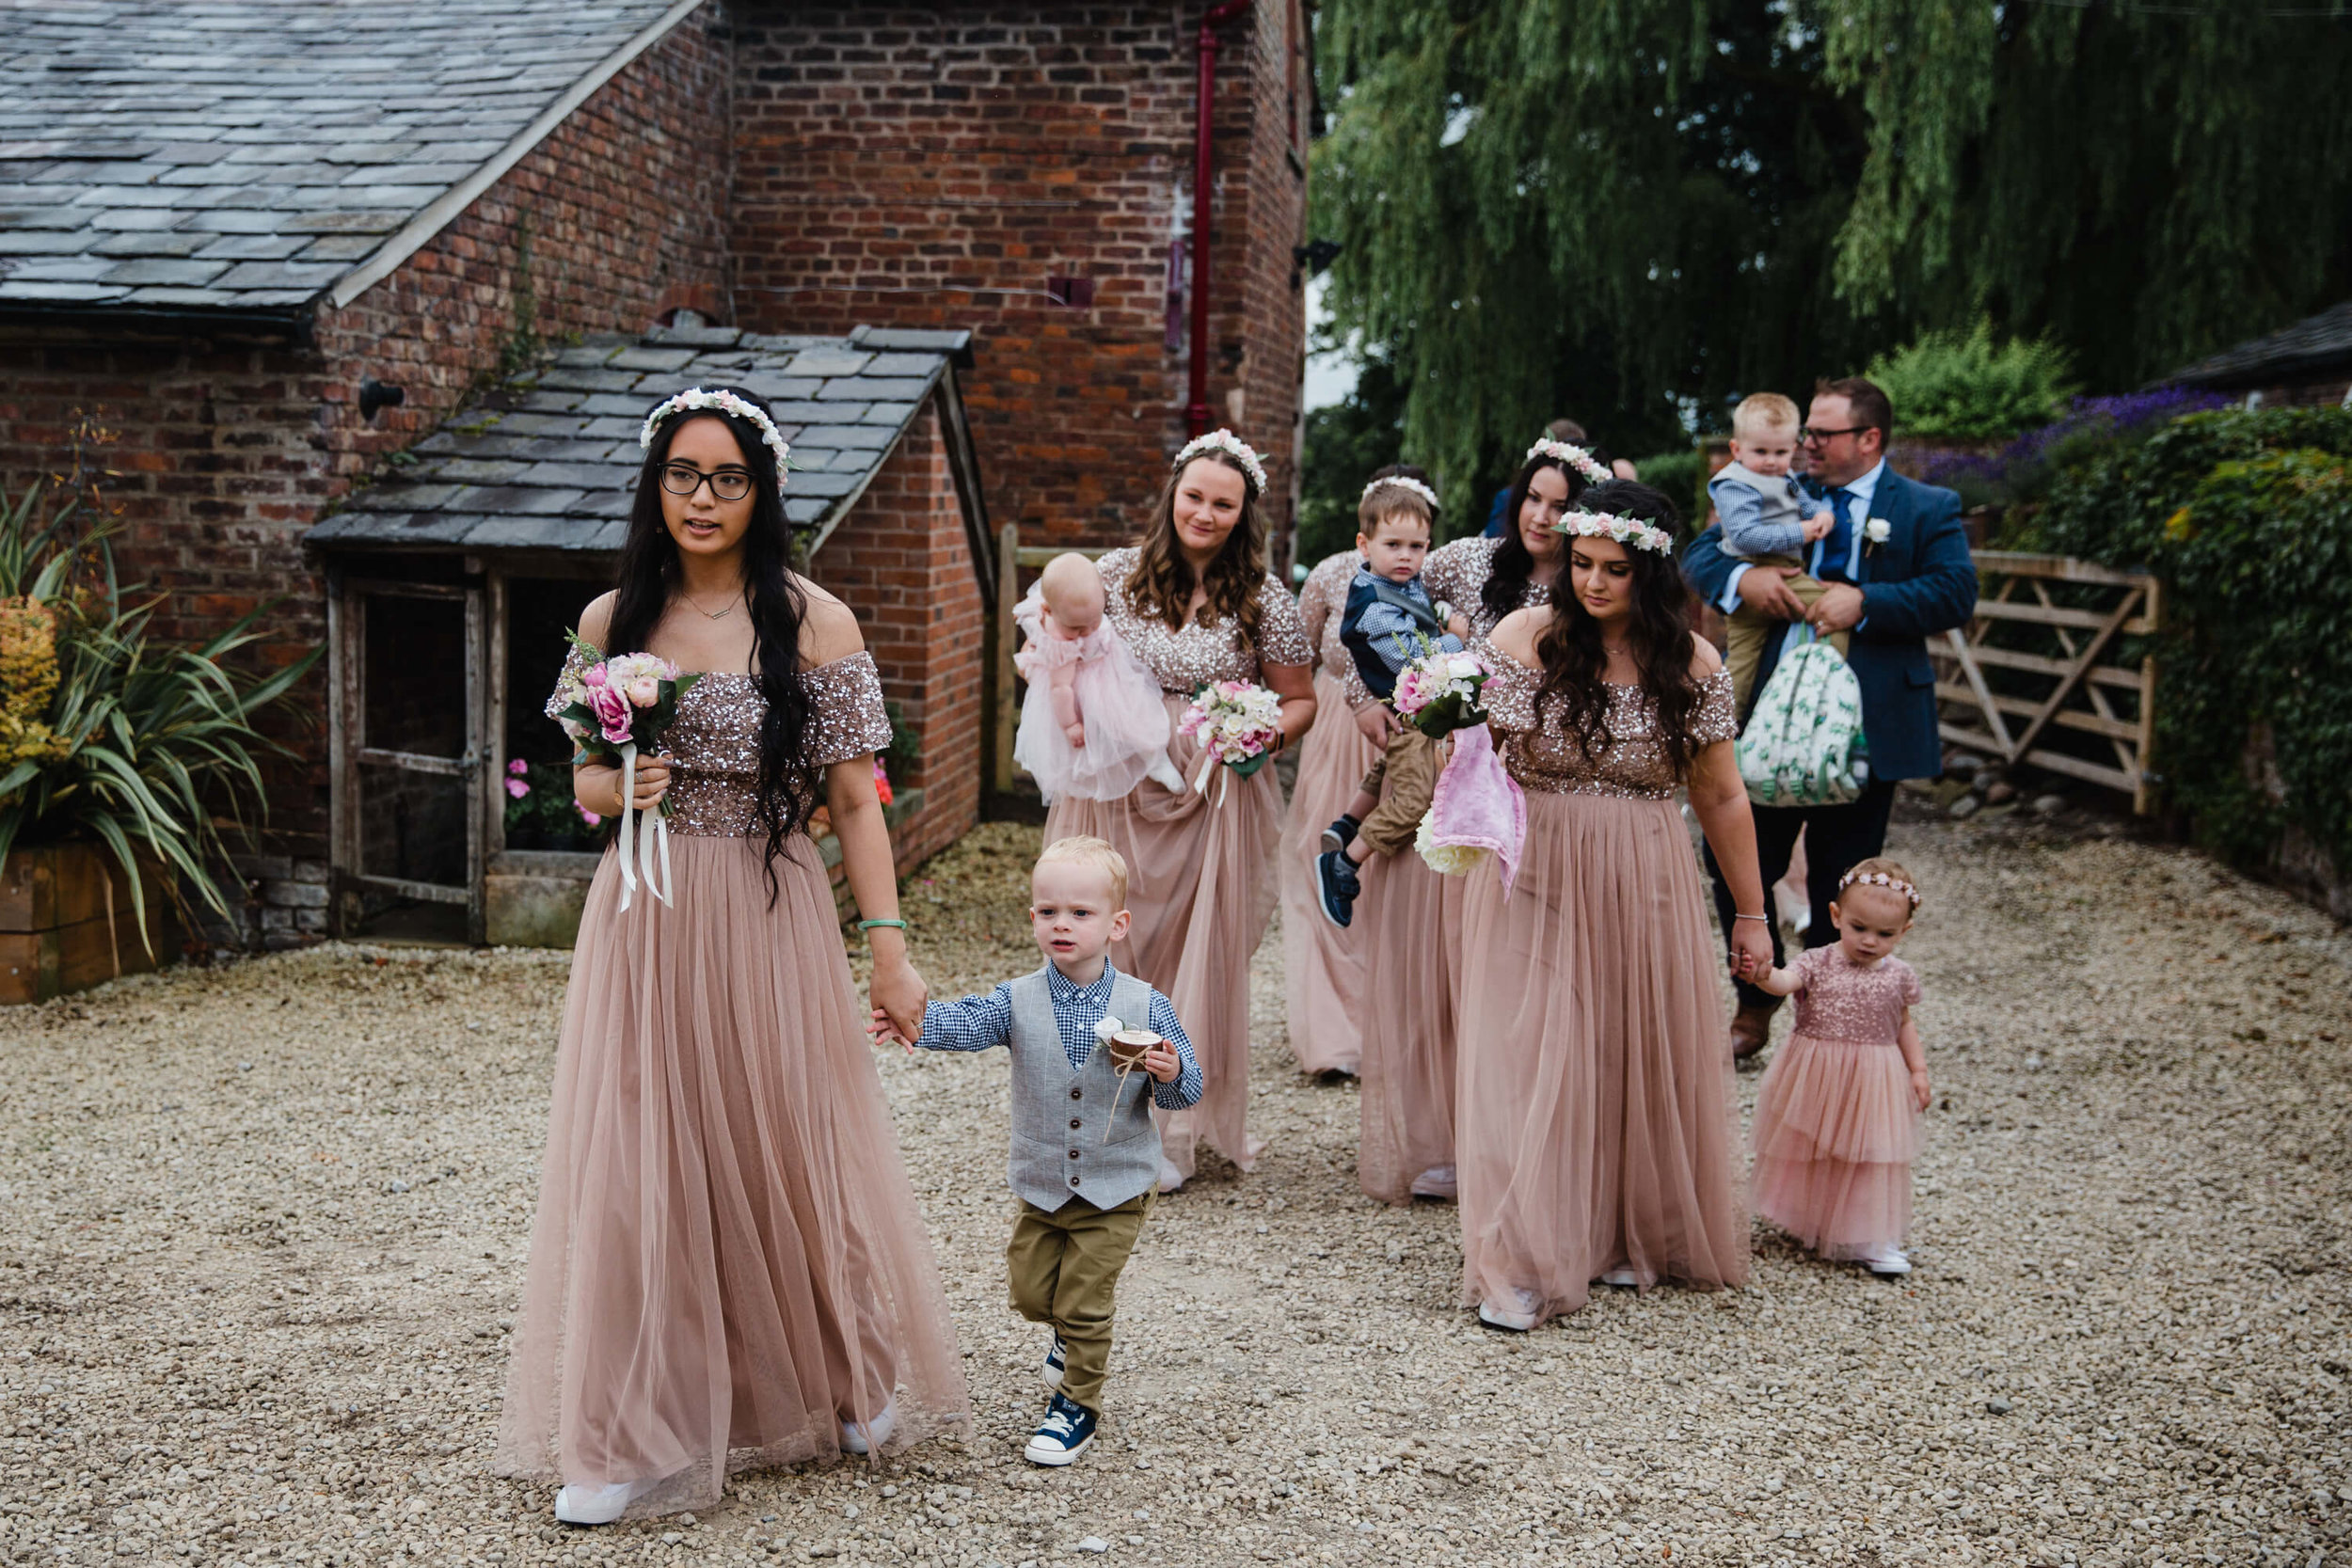 wedding procession of bridesmaids flock to service